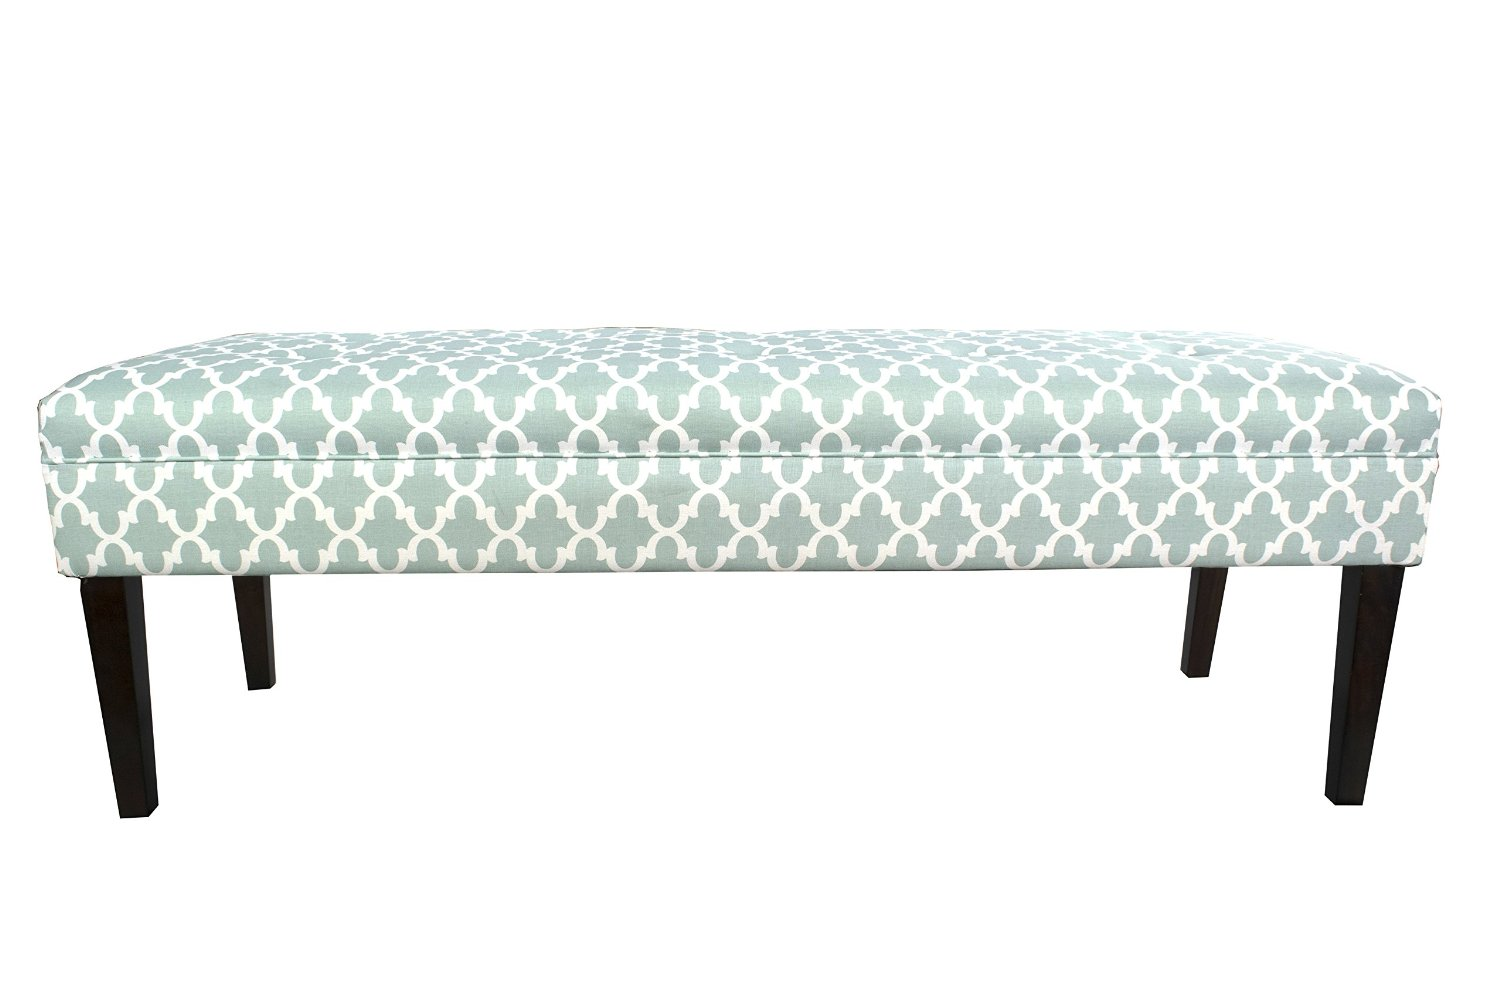 MJL Furniture Designs Kaya Collection Upholstered and Padded Button Tufted Accent Bedroom Bench, Fulton Series, Snowy